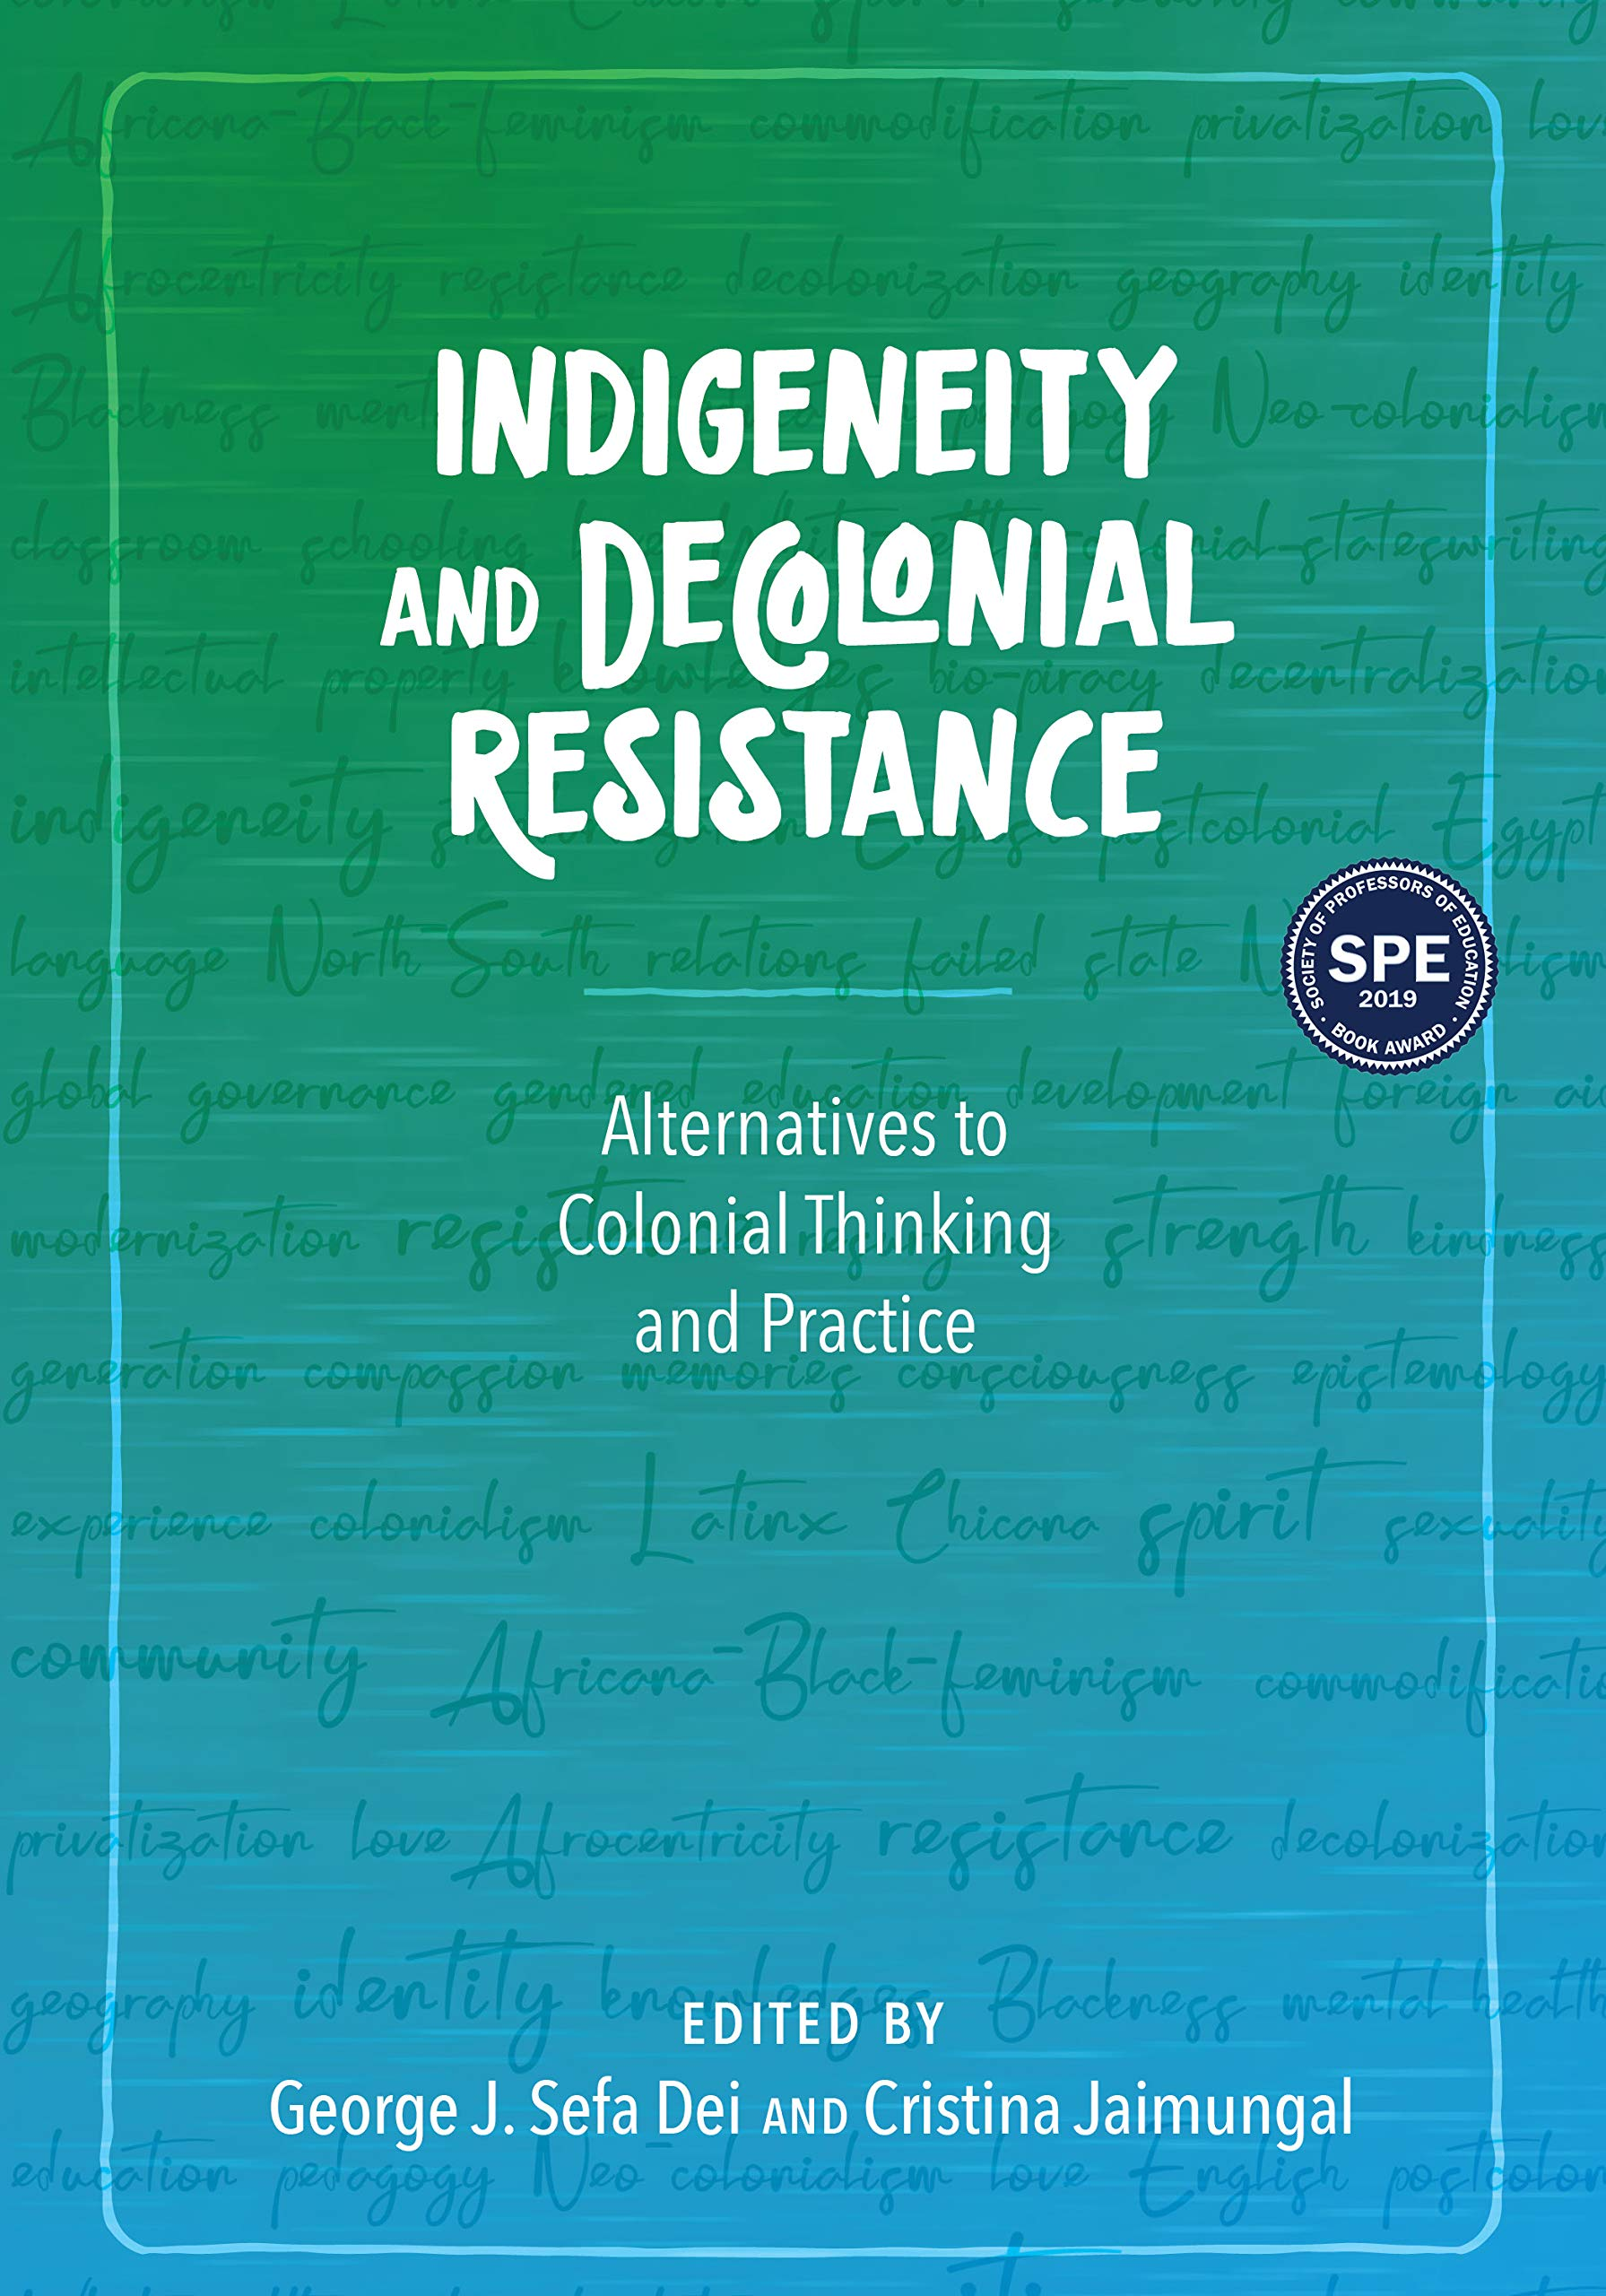 Indigeneity and Decolonial Resistance: Alternatives to